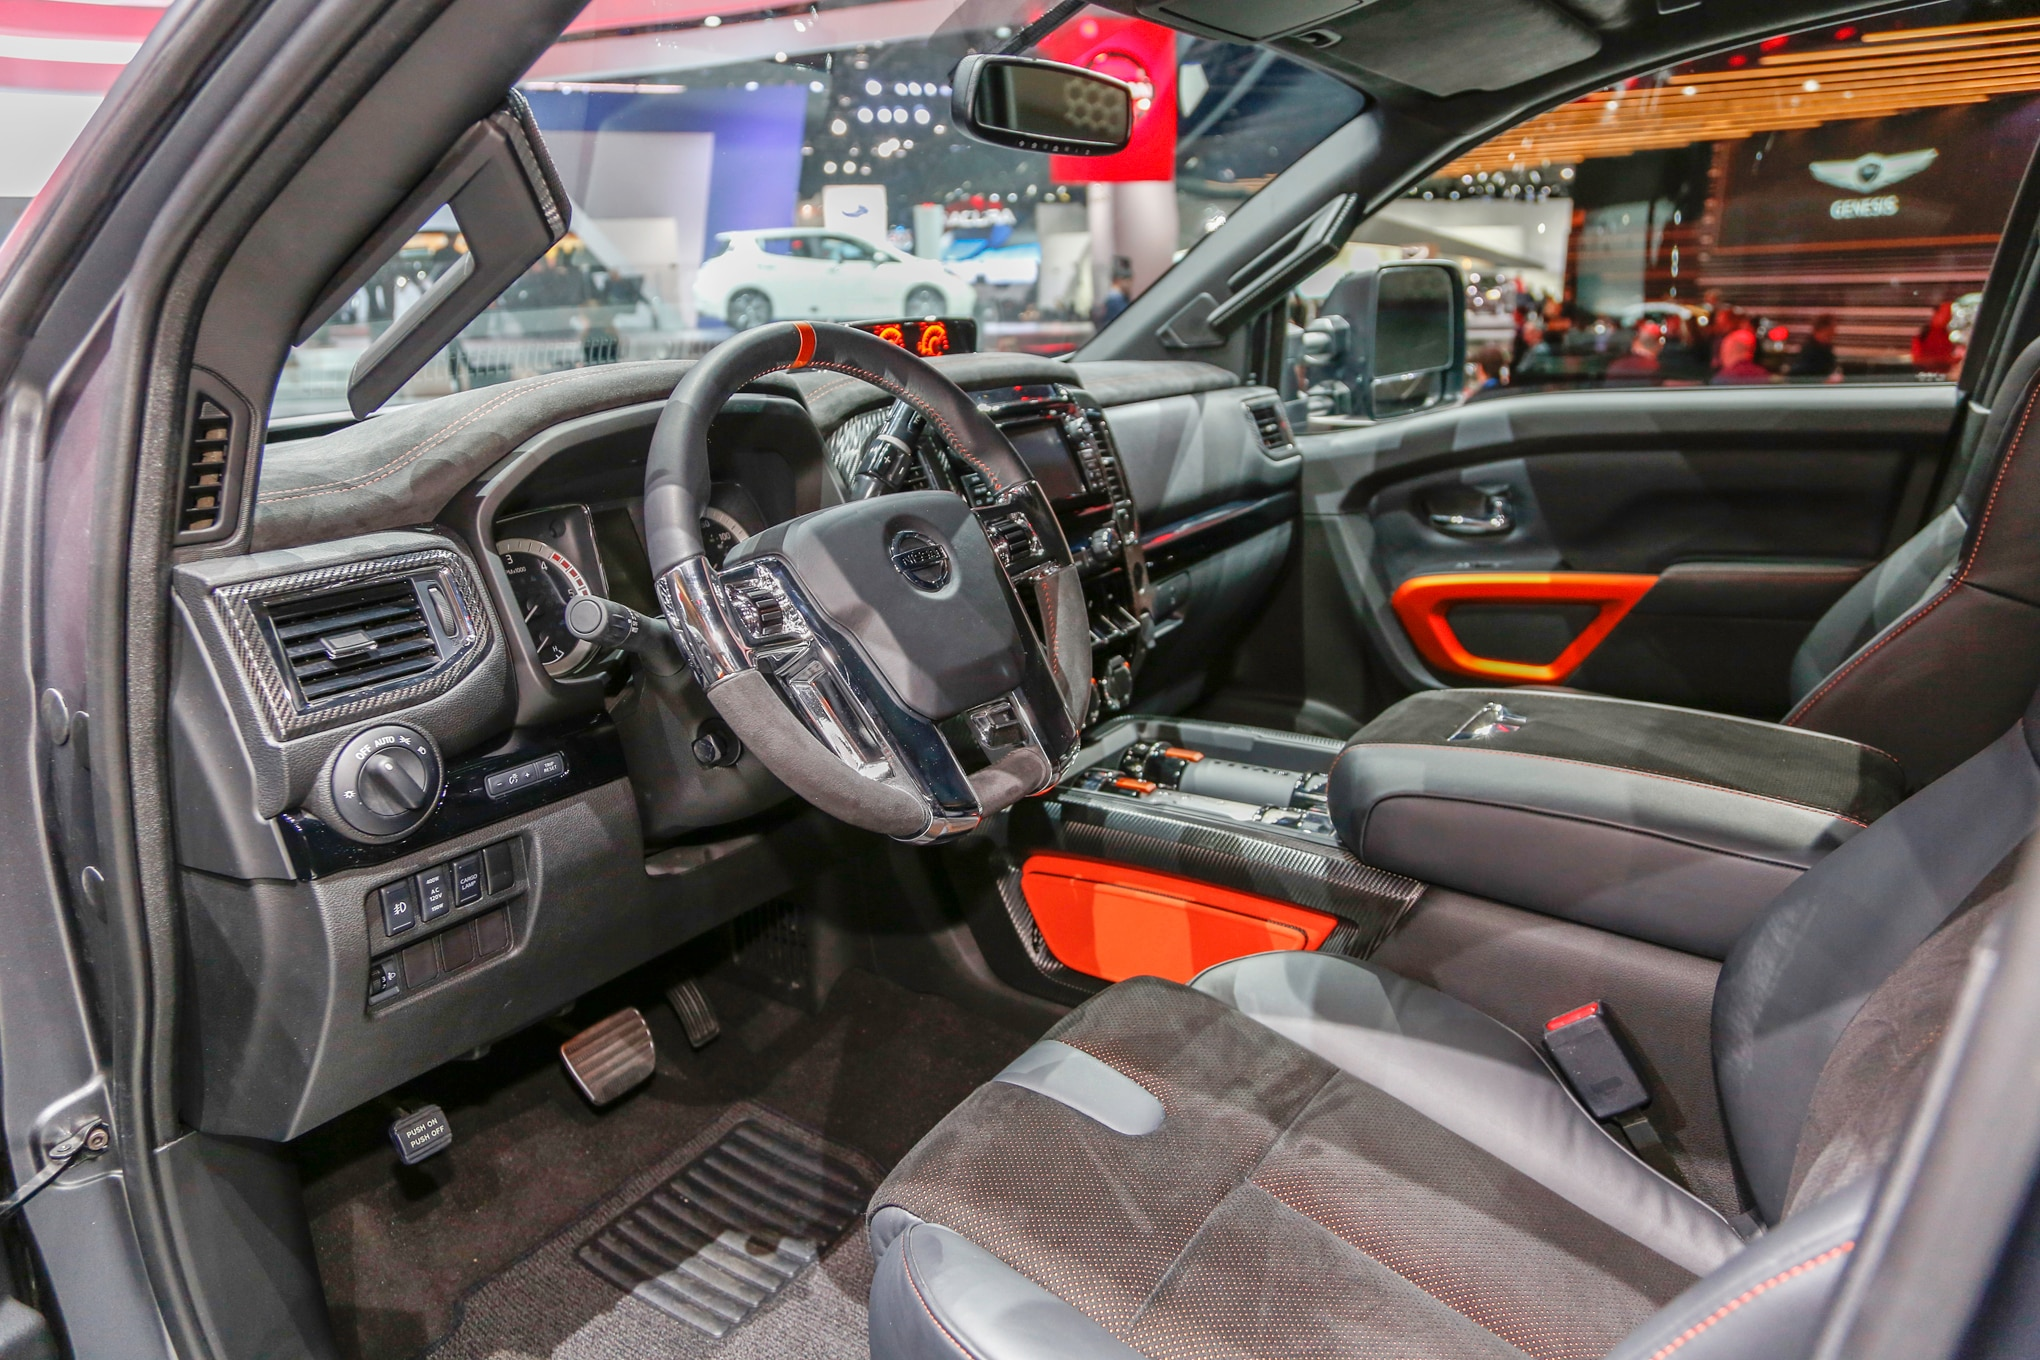 Nissan Titan Warrior Concept interior view 02